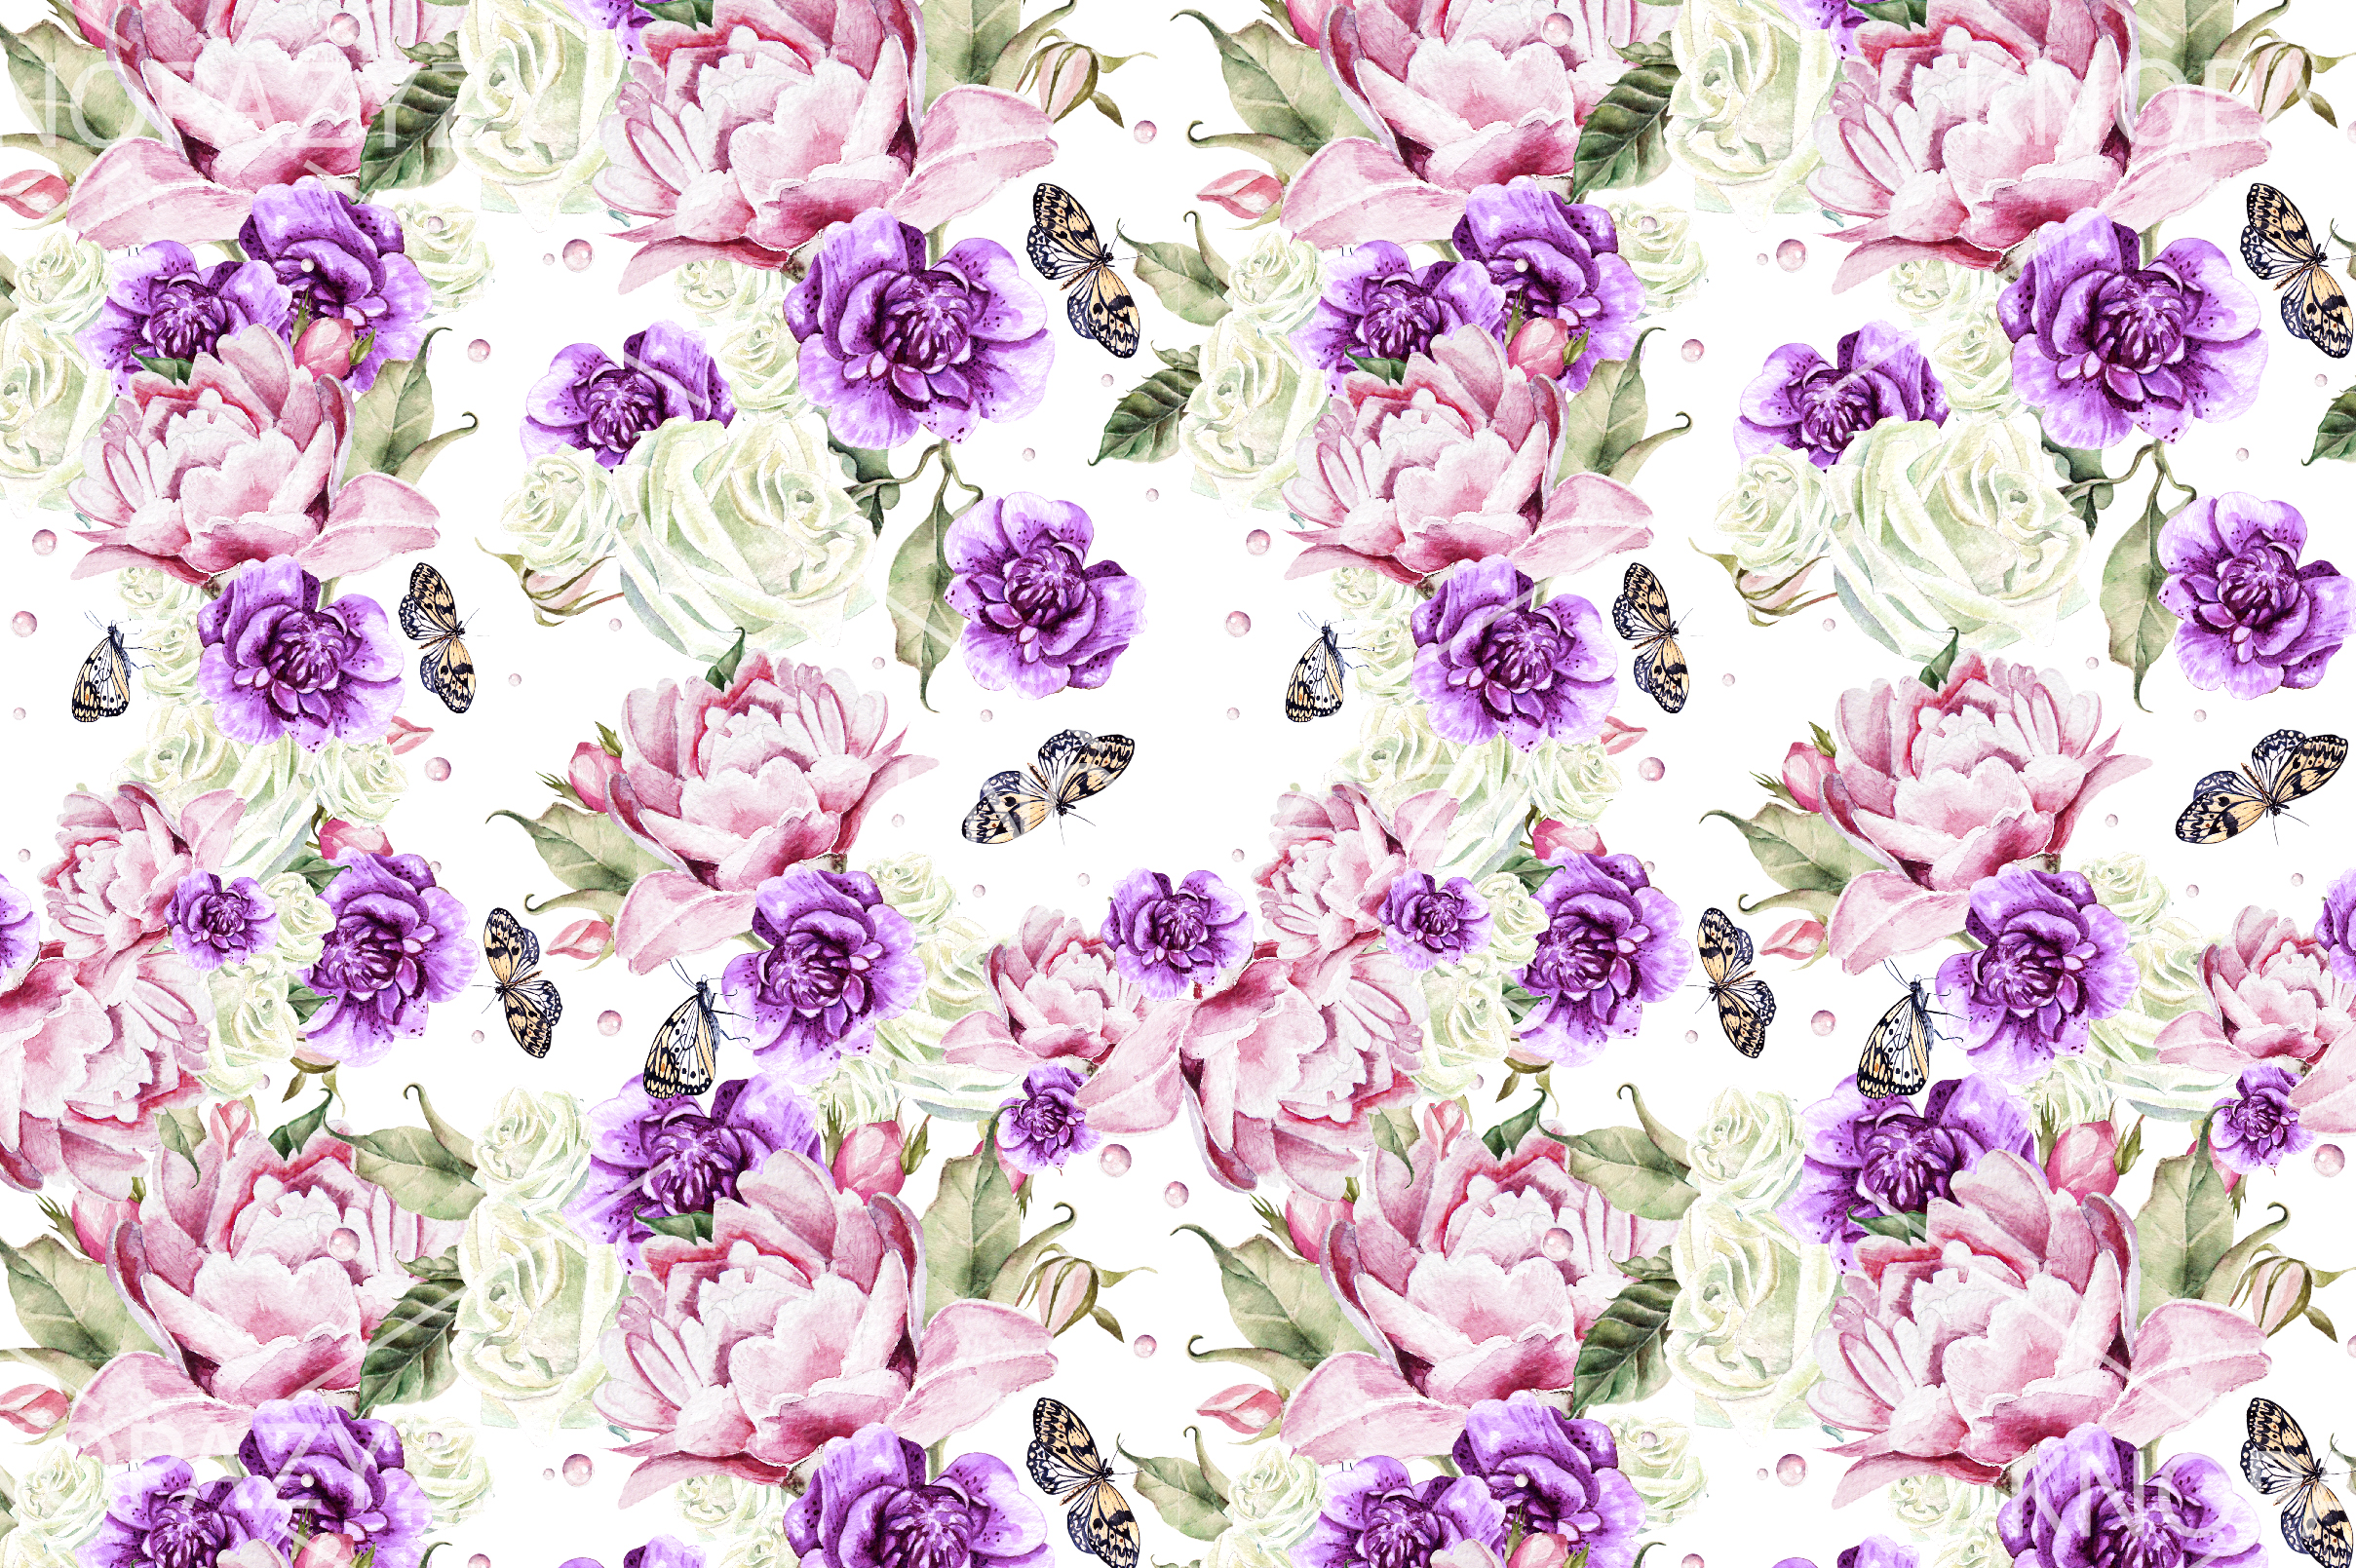 10 Hand Drawn Watercolor Pattern example image 6